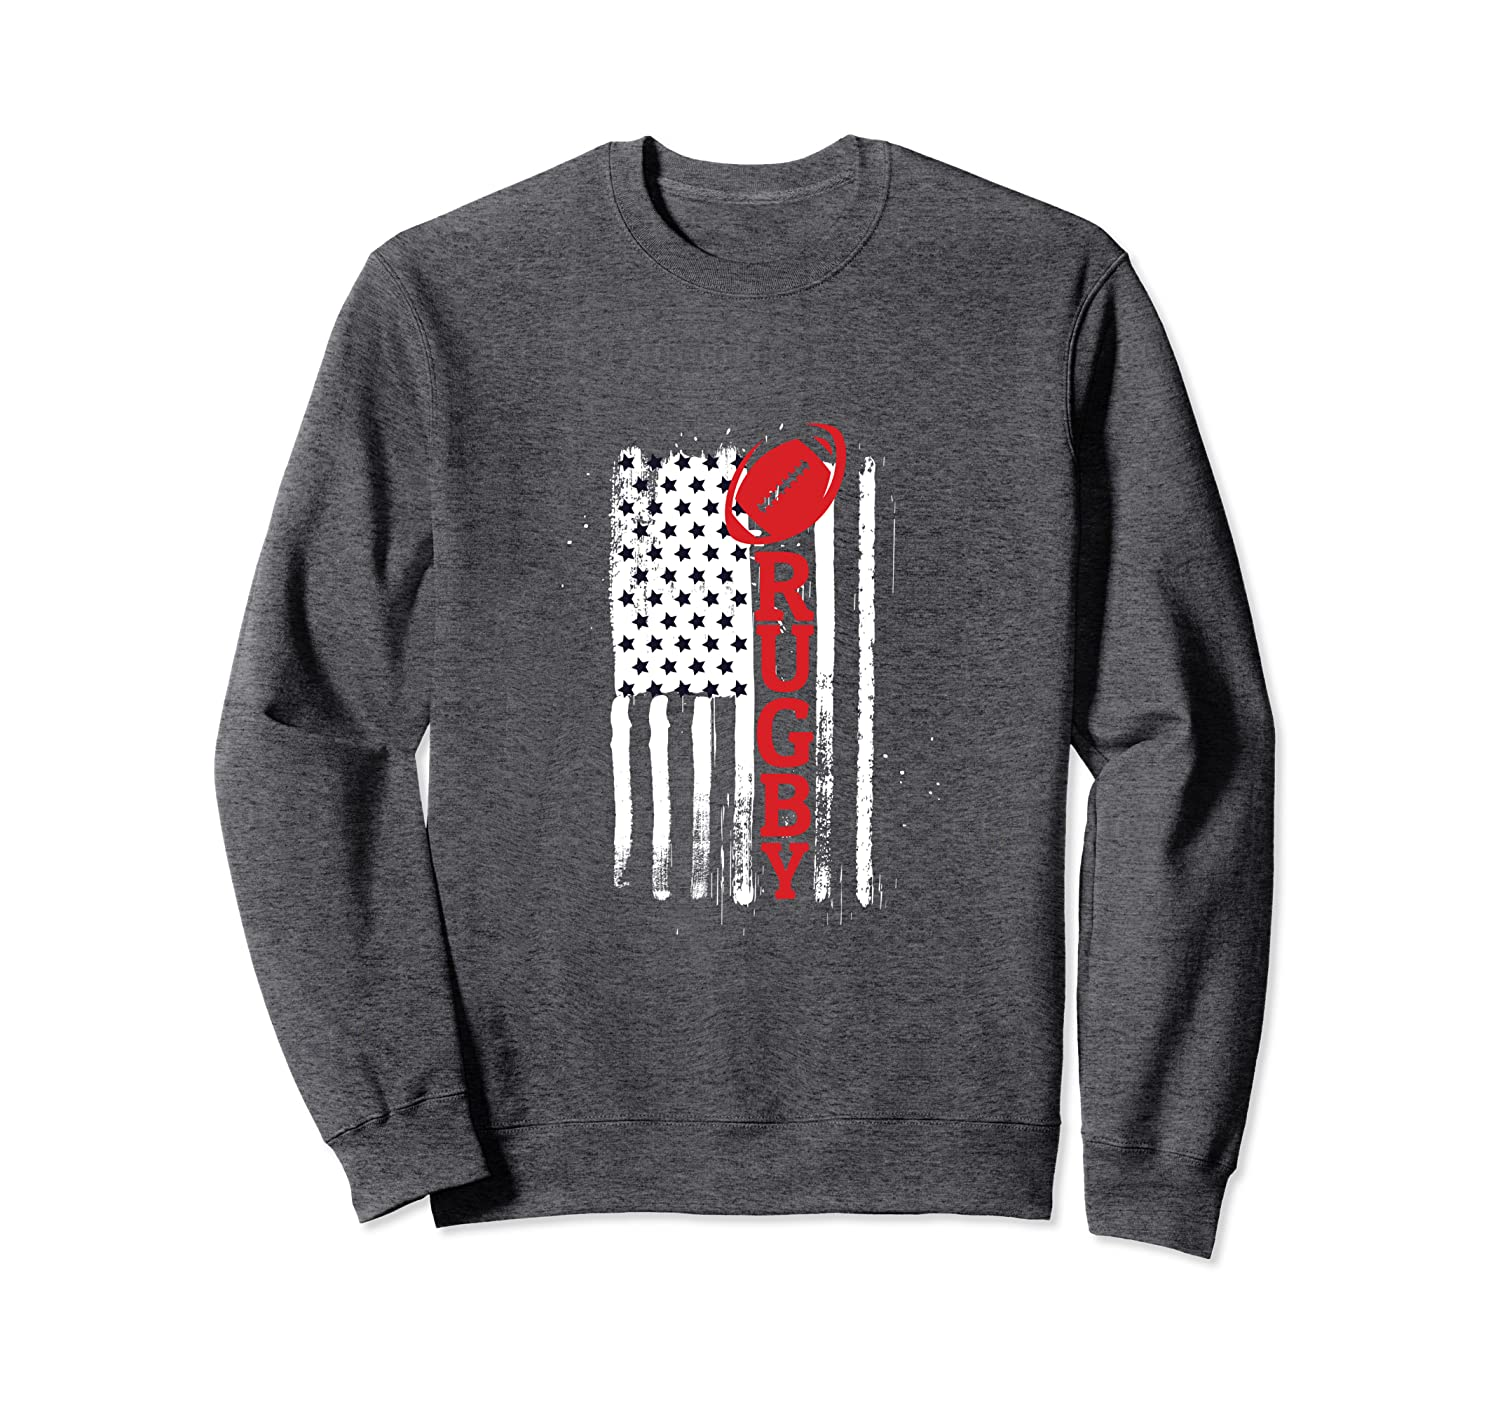 USA Flag Rugby Vintage Rugby Lover Cute Gift Sweatshirt